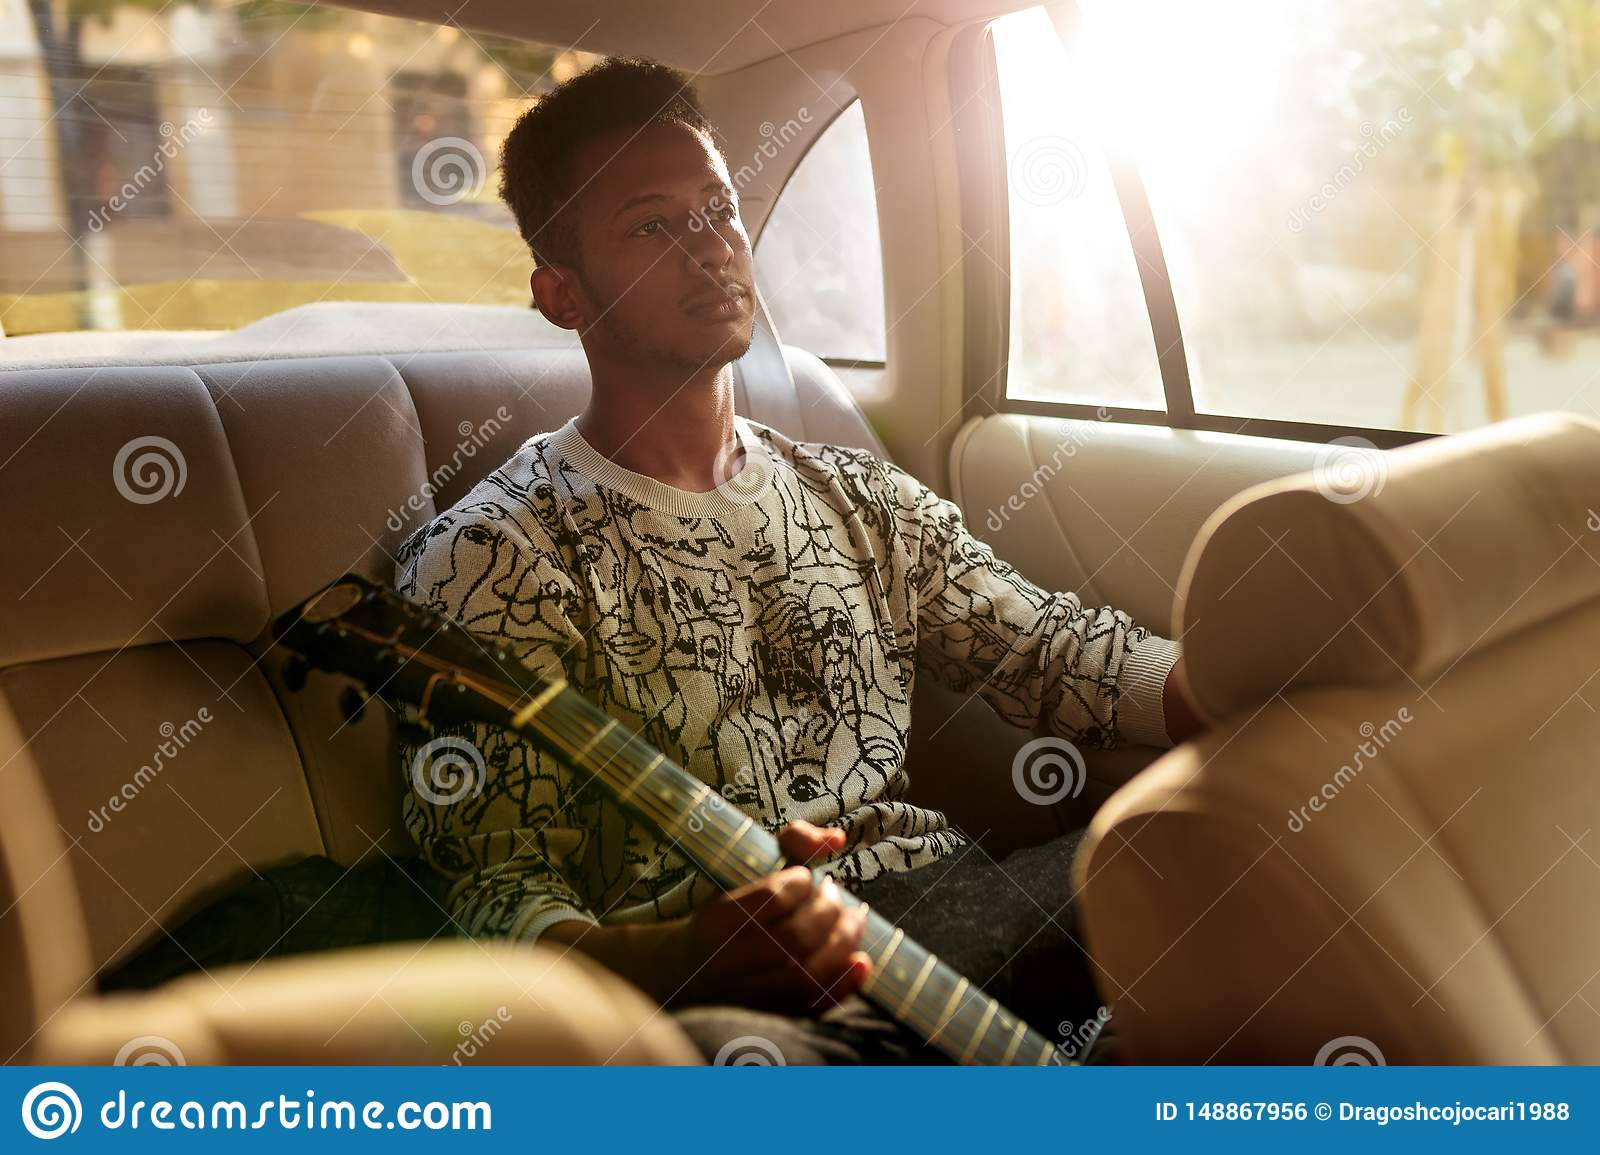 Young man multi race sitting on the back seat in the car. A singer holding a guitar while traveling inside of taxi.